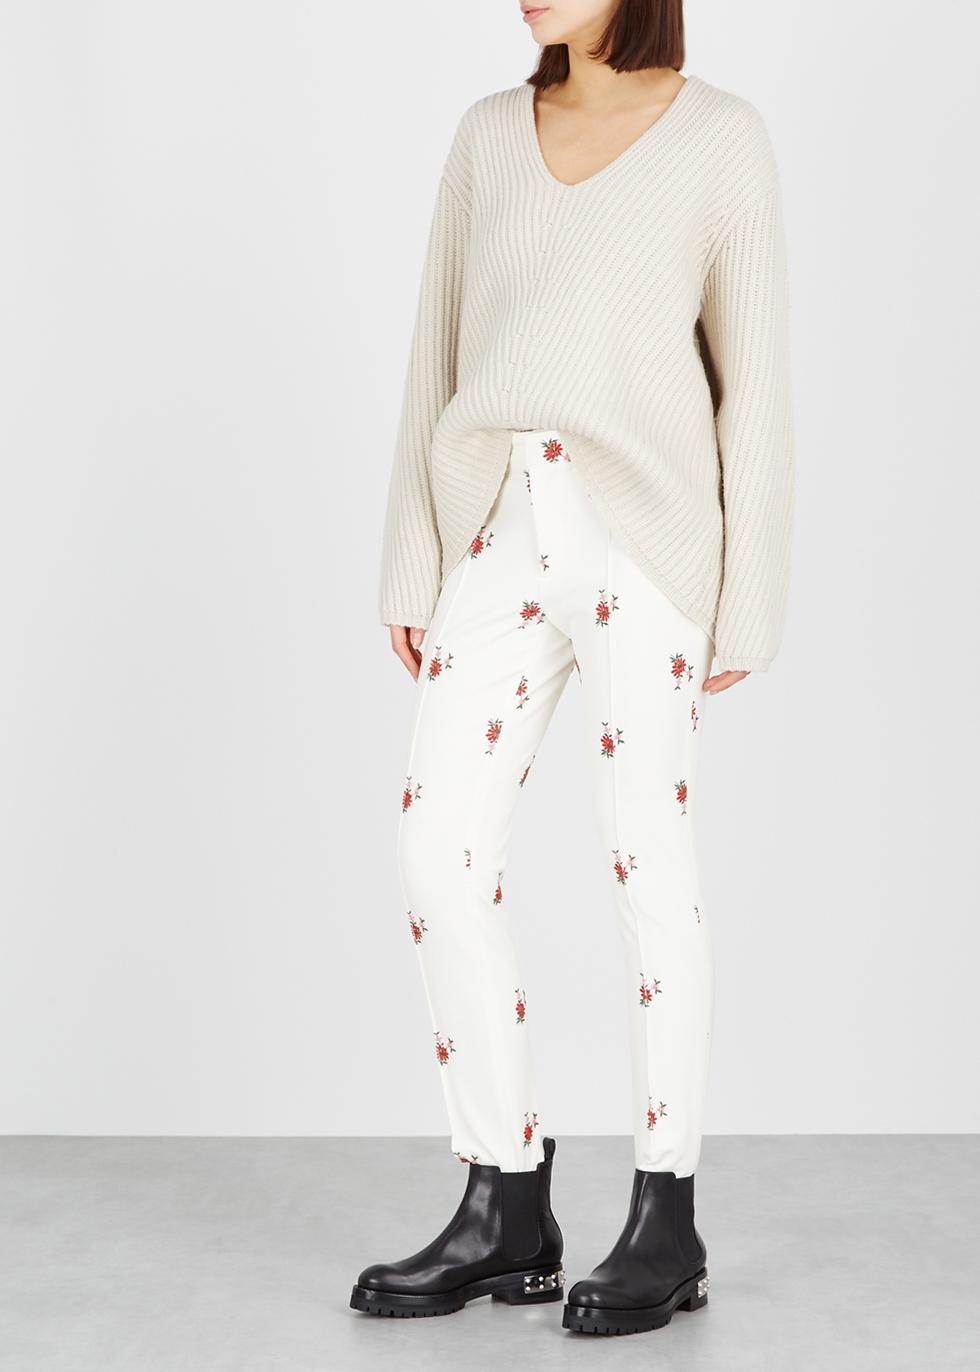 d3b3c3c55b Moncler Genius Moncler Grenoble embroidered stretch-twill trousers - Harvey  Nichols